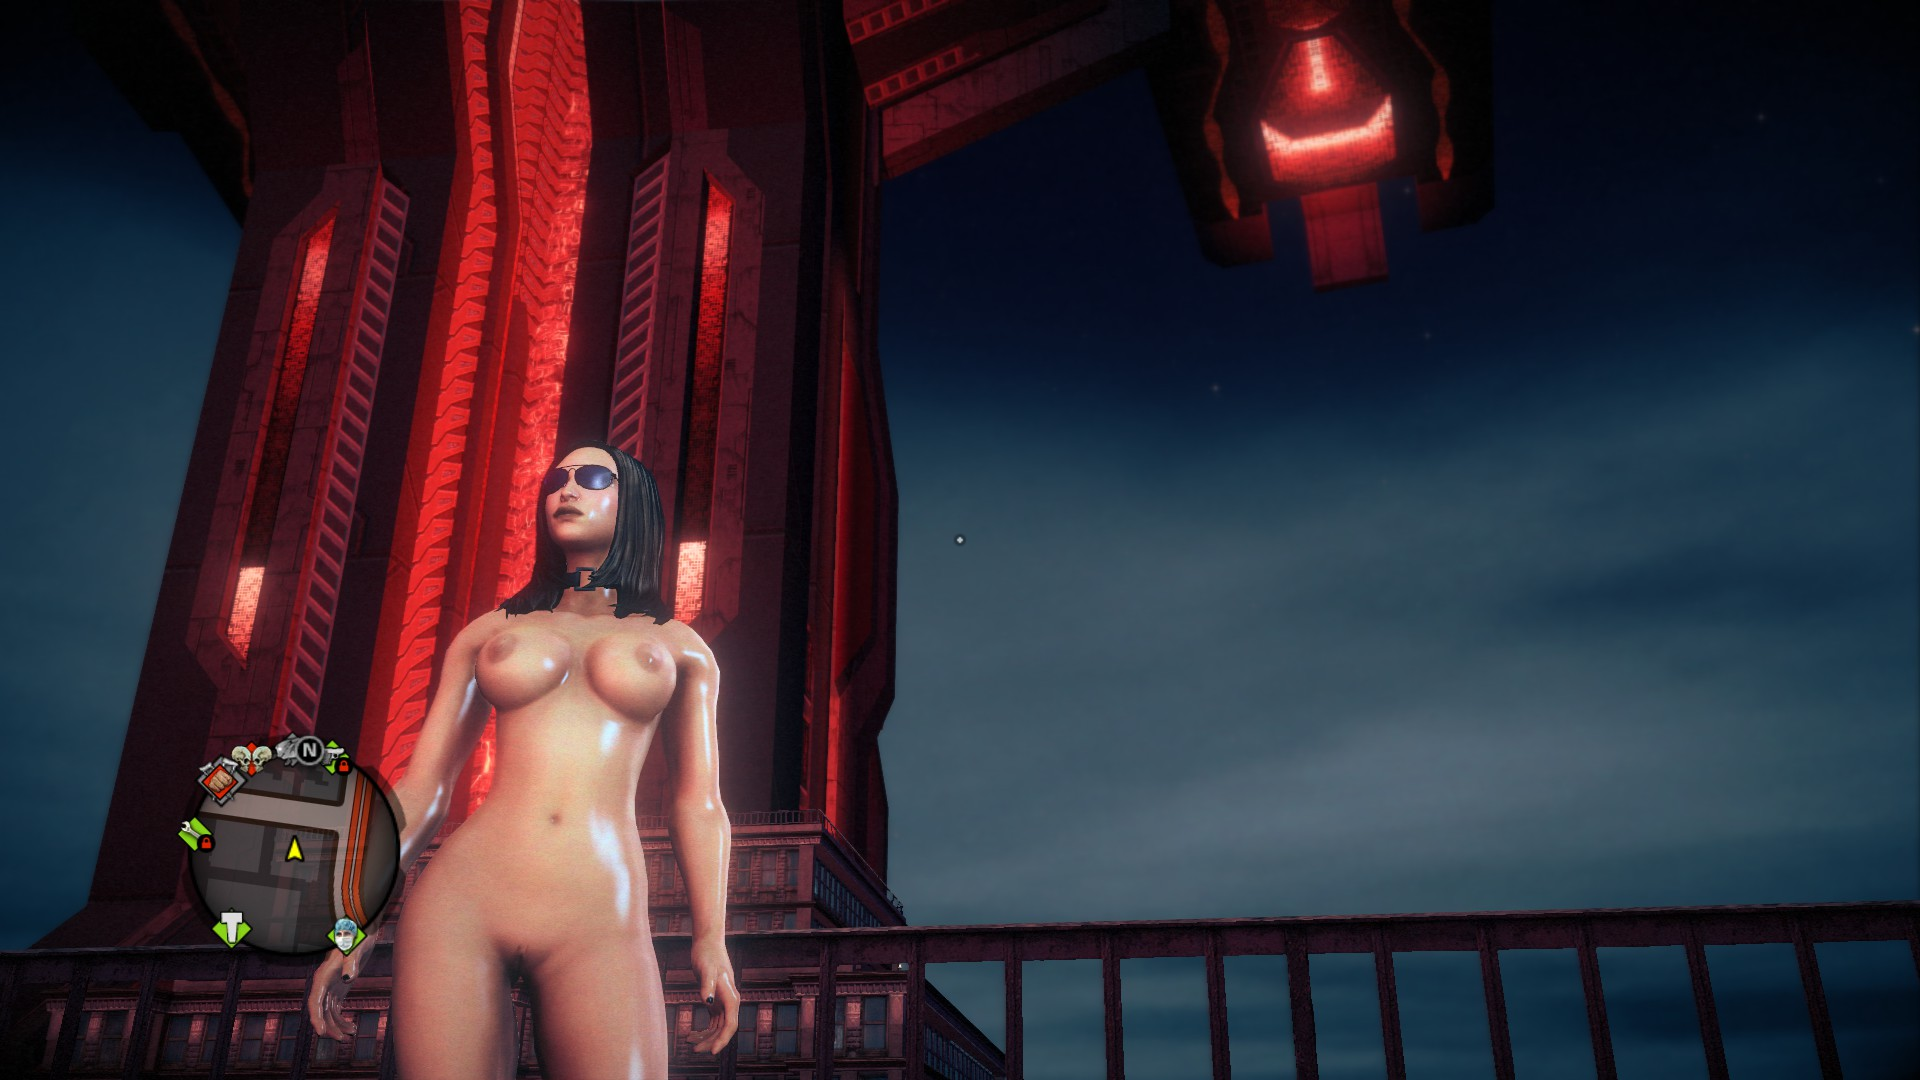 Download mod nude saints row iv anime movies